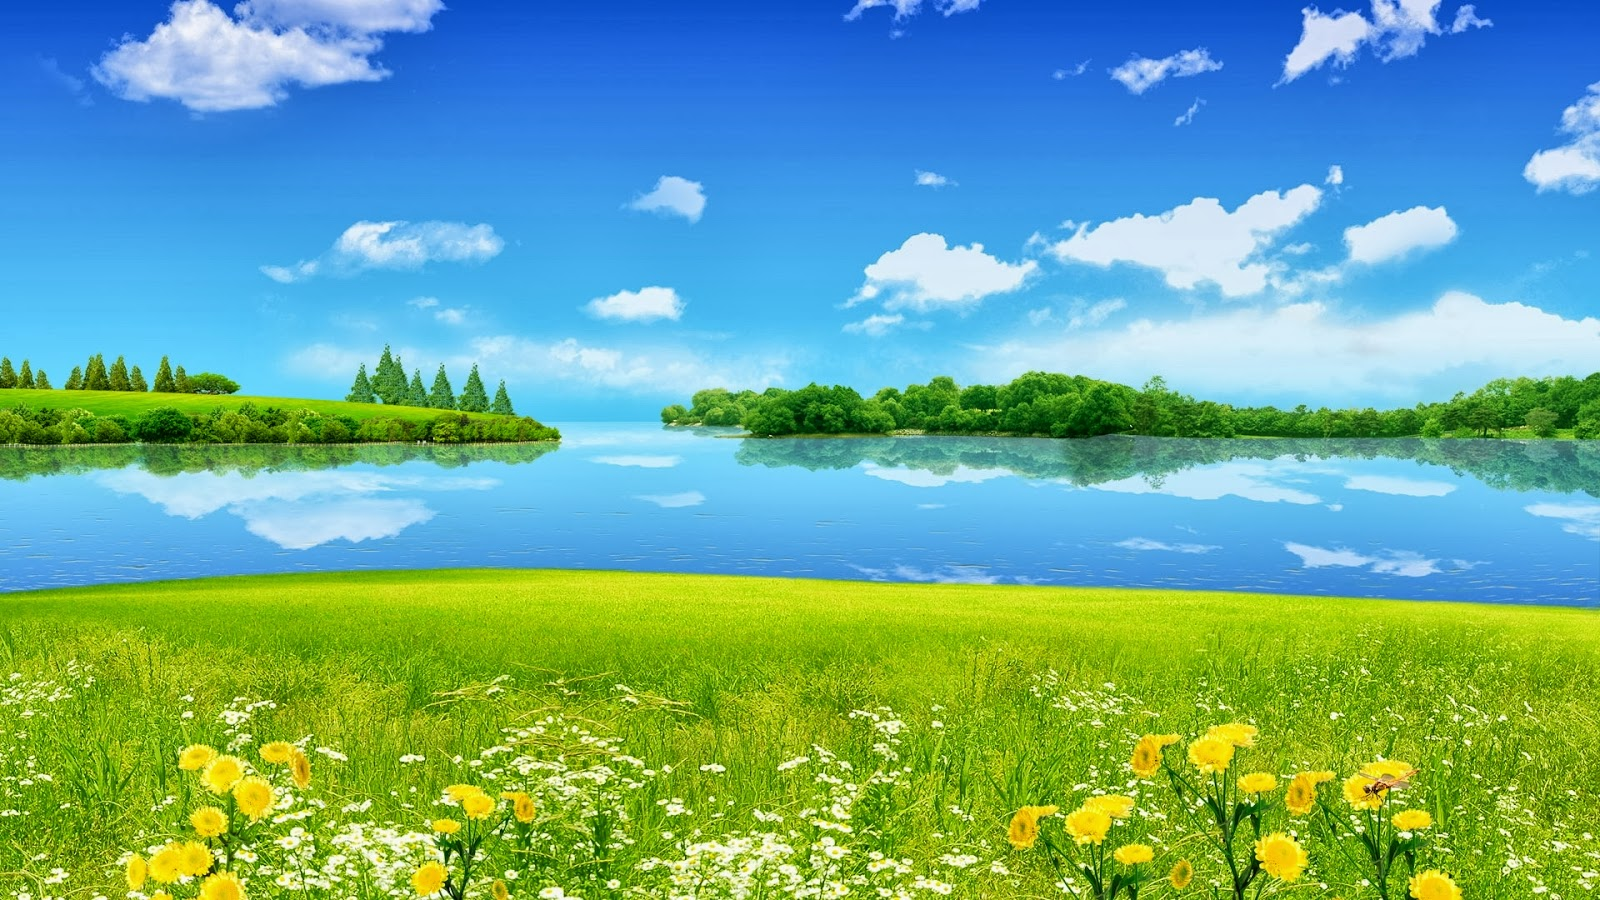 HD Nature Wallpapers Downloads For Laptop PC Desktop Backgrounds 1600x900